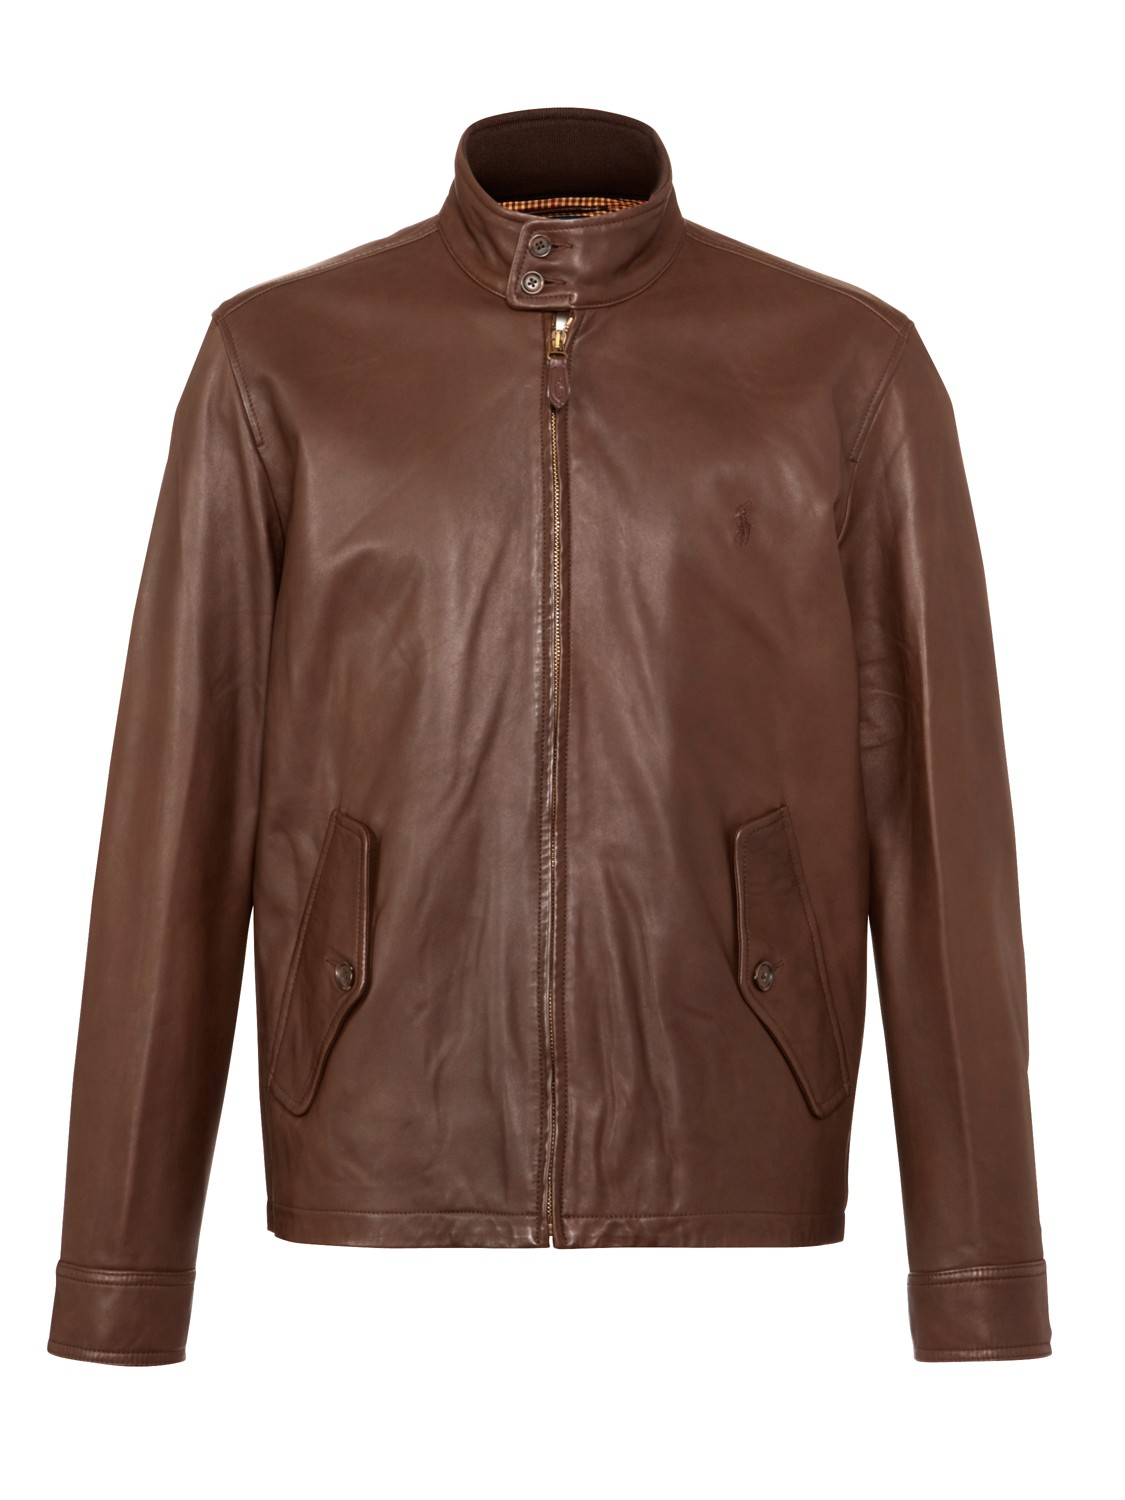 polo ralph lauren barracuda leather jacket in brown for. Black Bedroom Furniture Sets. Home Design Ideas